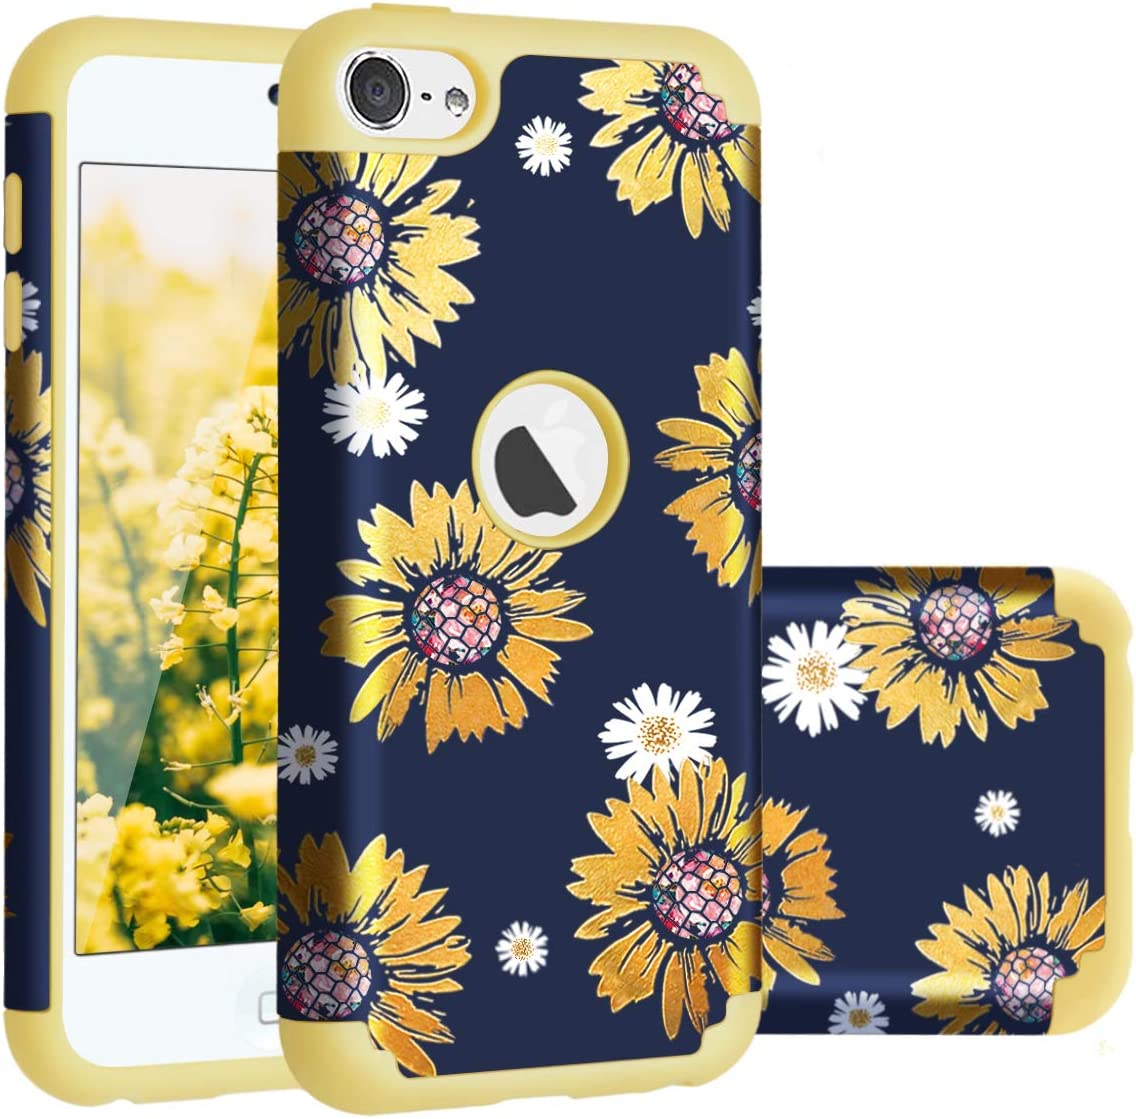 Casewind iPod Touch 7 case, iPod Touch 6 Case, iPod Touch 5/6/7 Case Sunflower Hard PC Silicone Dual Layer Hybrid Shockproof Anti-Scratch Bumper Protective Case for iPod Touch 5th 6th 7th Gen, Yellow